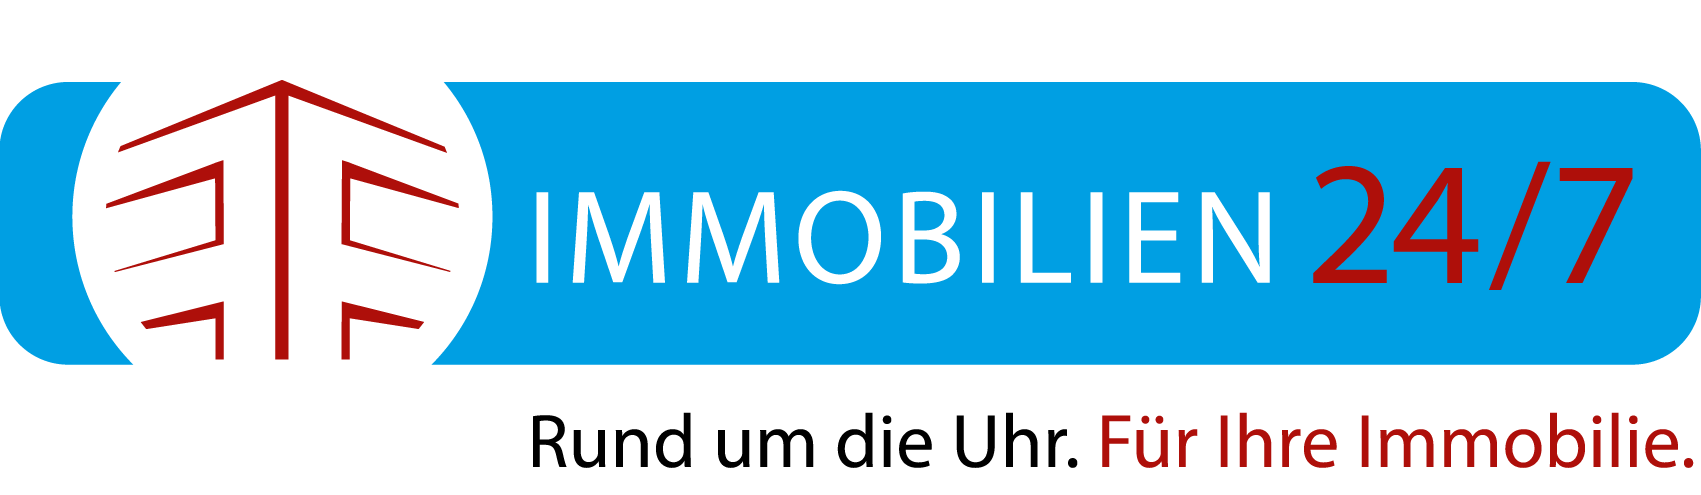 Immobilien 24/7